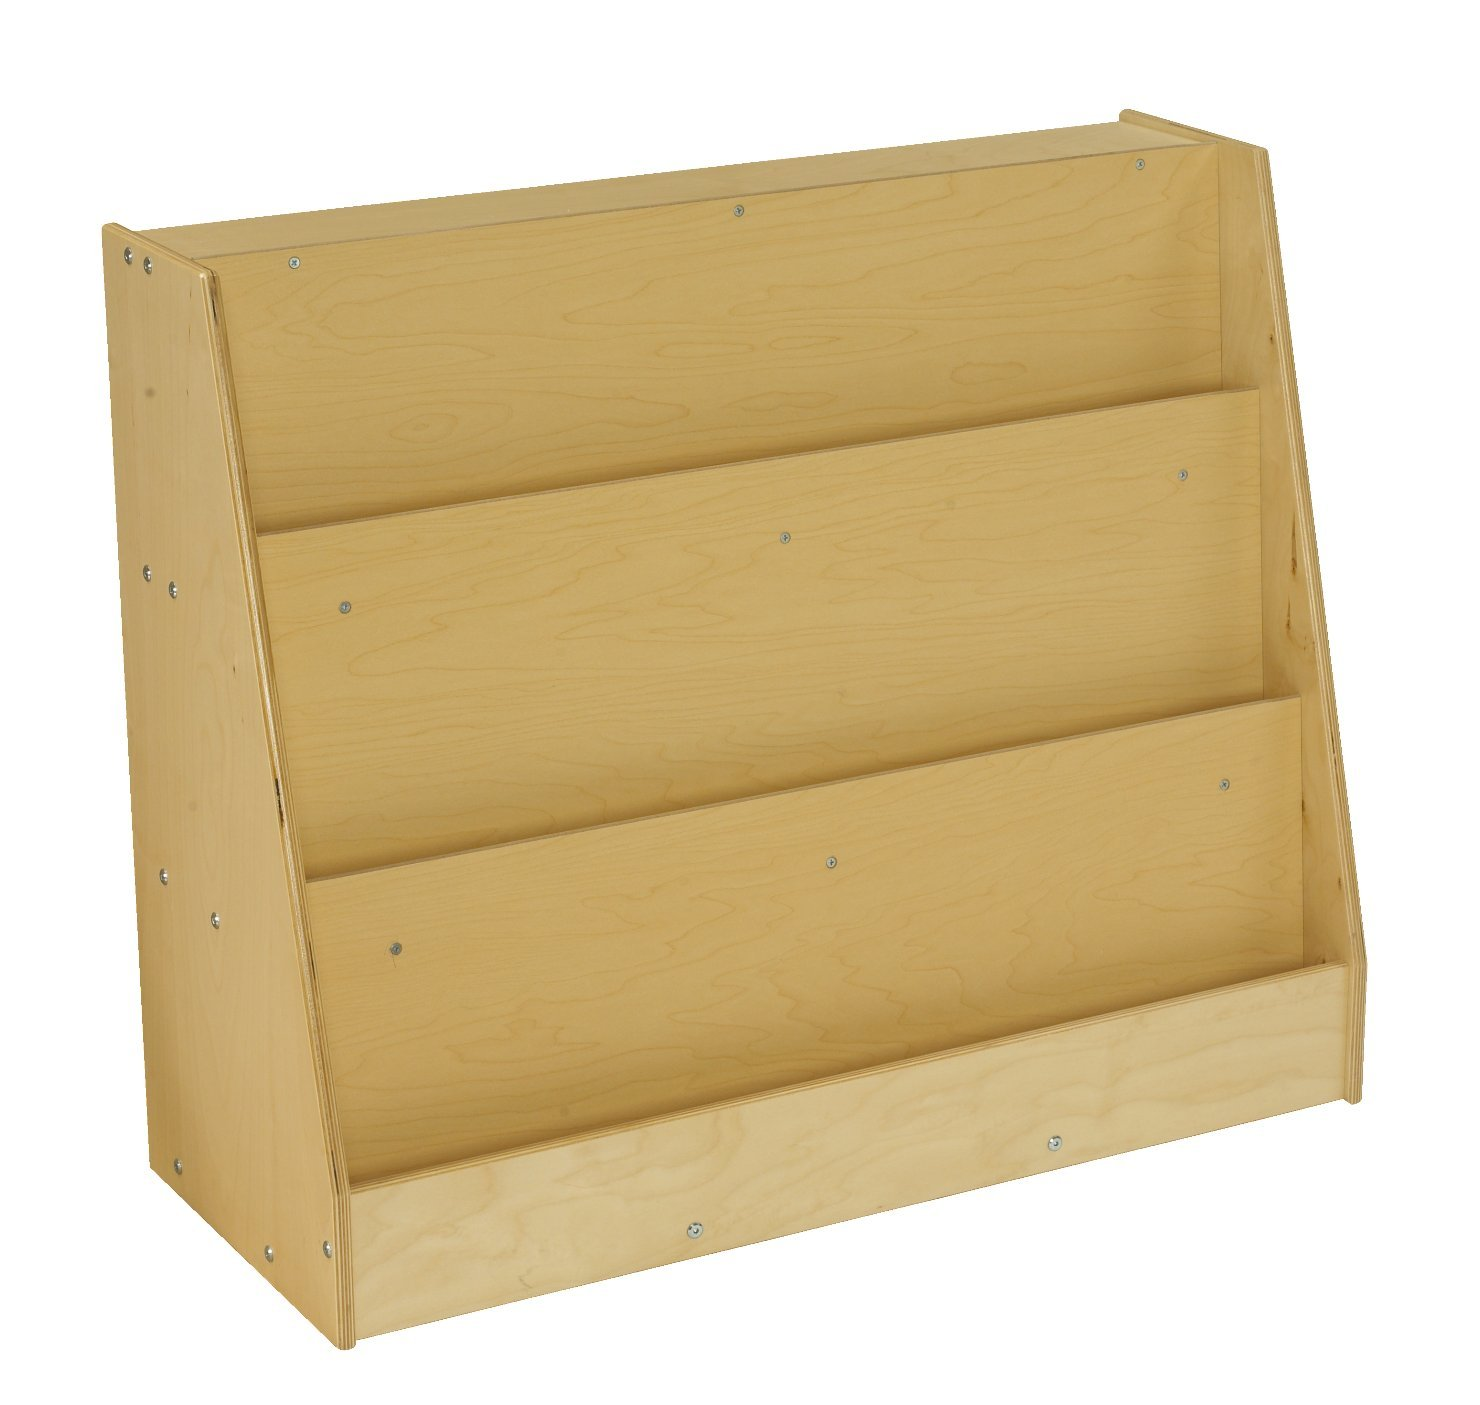 Childcraft 1526415 ABC Furnishings Library Book Display, 30'' Height, 14.5'' Width, 35.75'' Length, Natural Wood